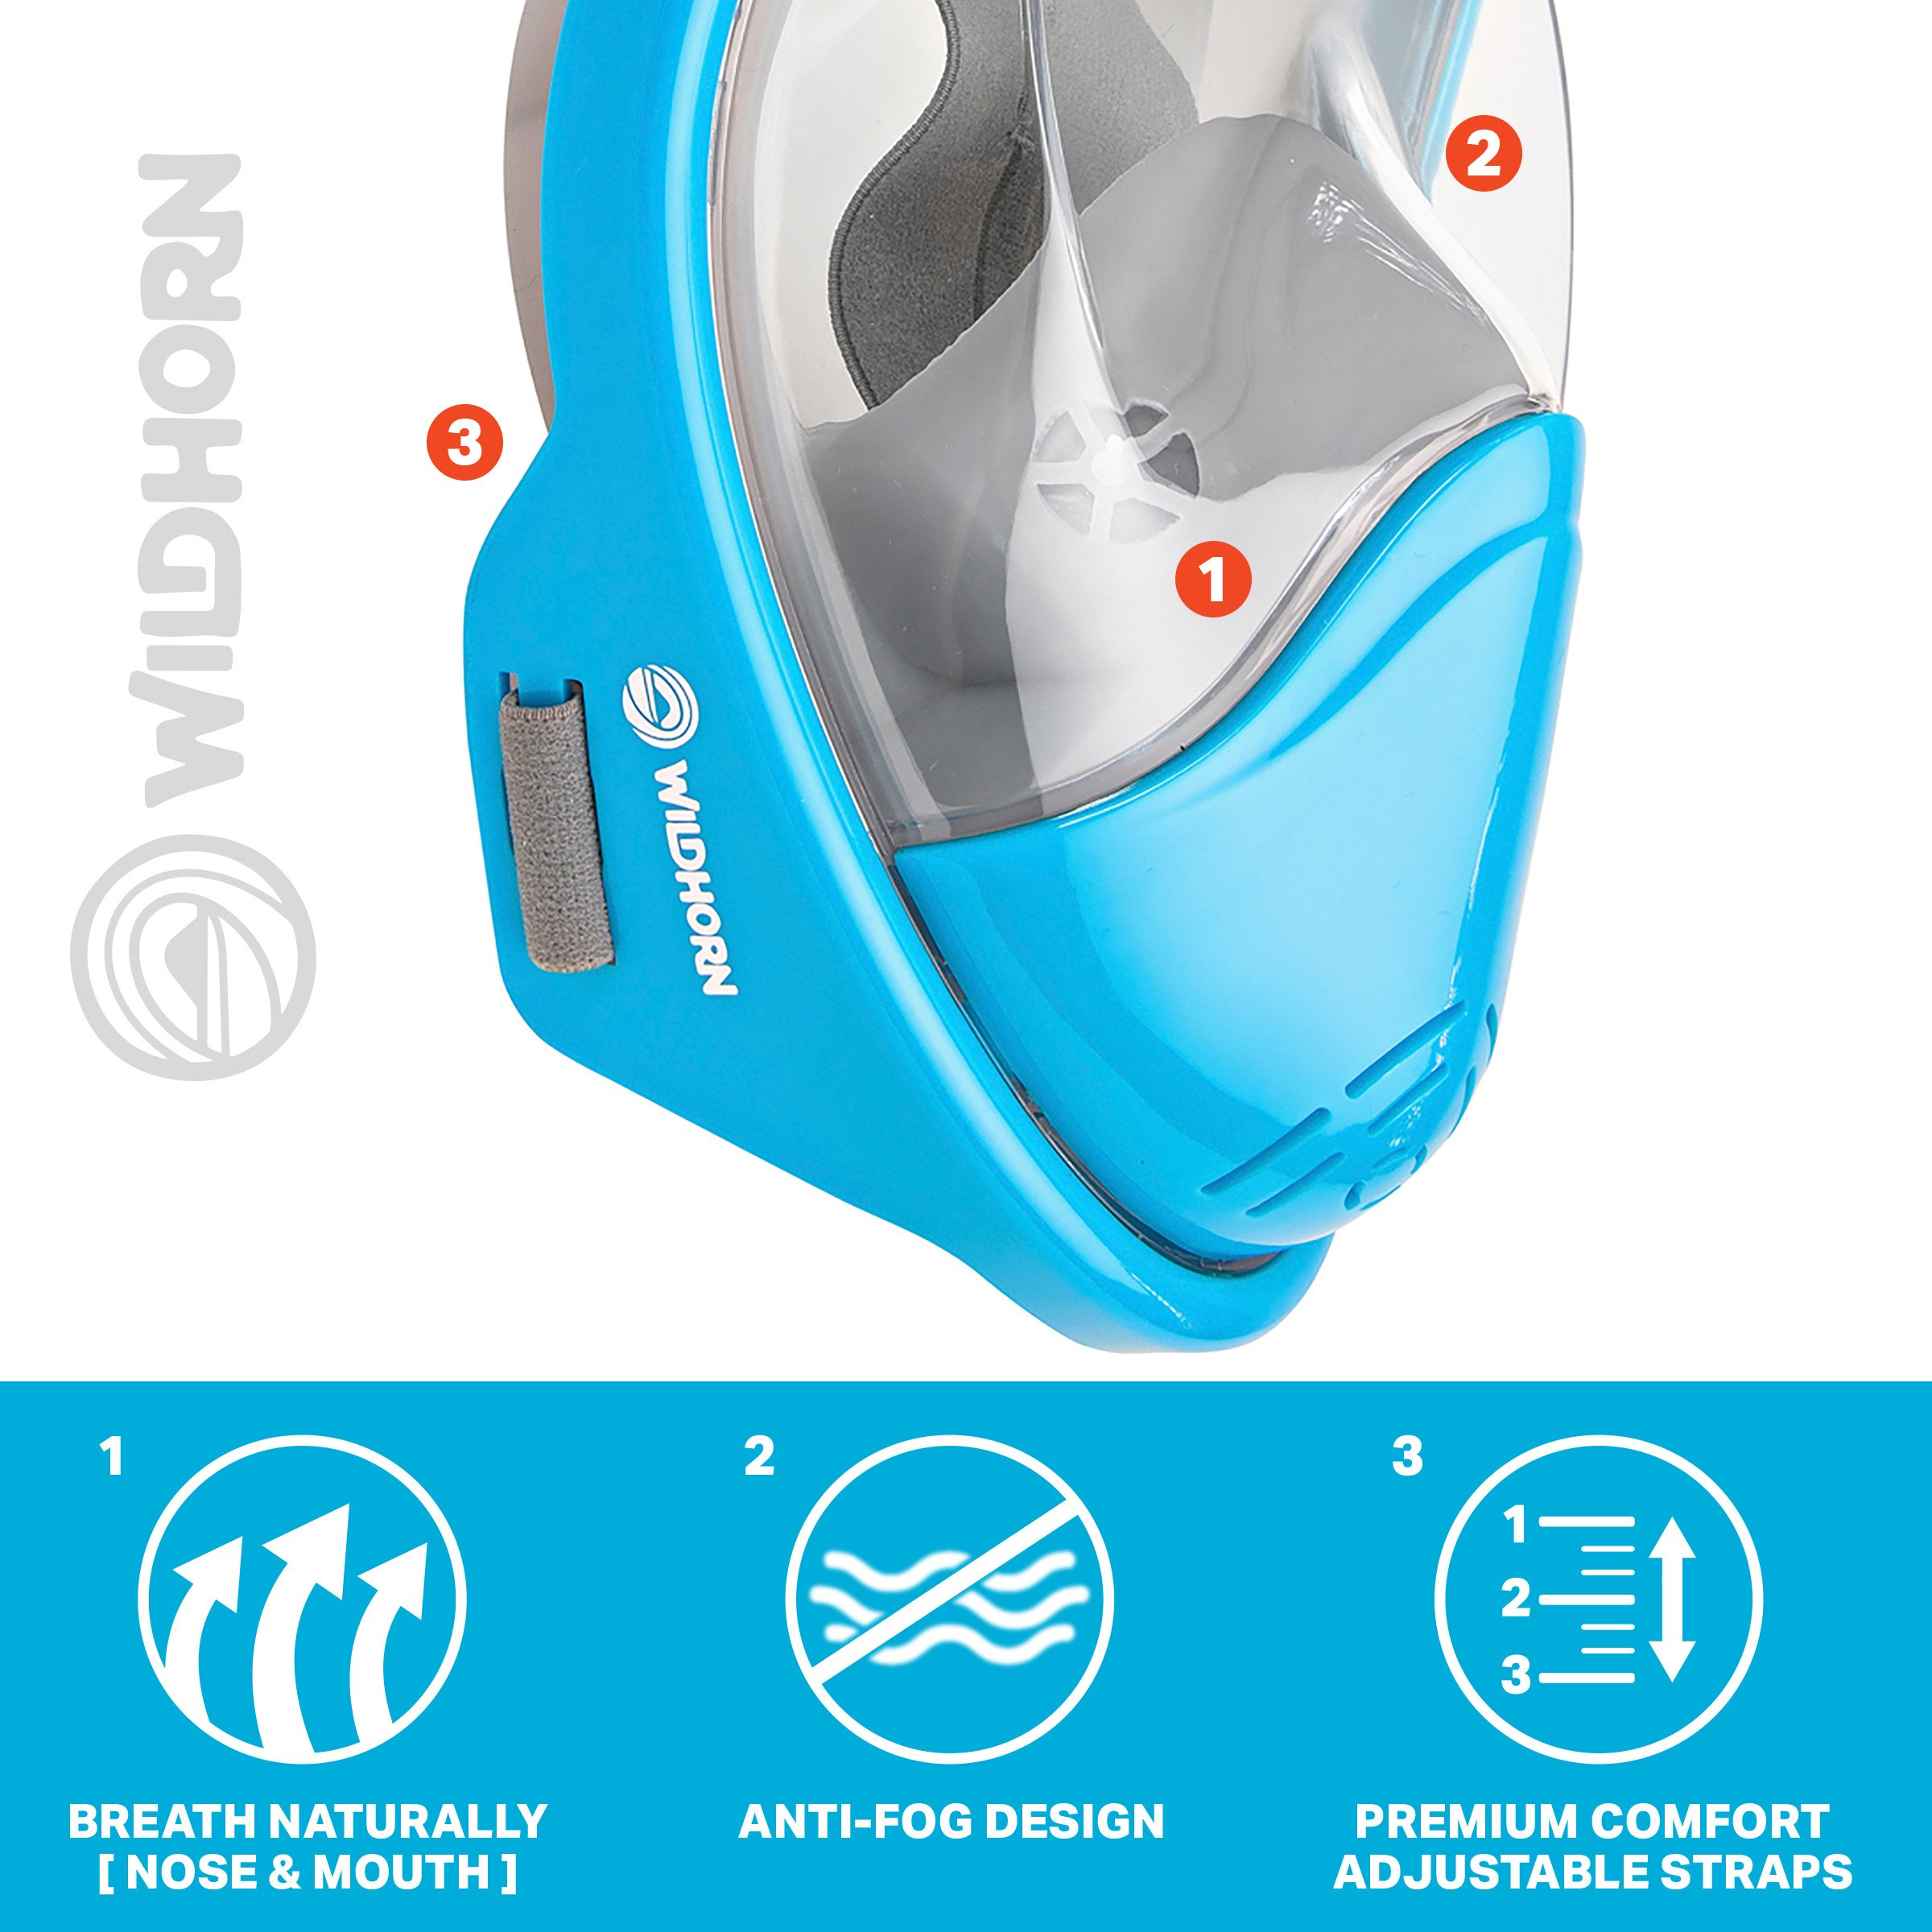 Seaview 180° GoPro Compatible Snorkel Mask- Panoramic Full Face Design. See More With Larger Viewing Area Than Traditional Masks. Prevents Gag Reflex with Tubeless Design (Aqua, S/M) by WildHorn Outfitters (Image #5)